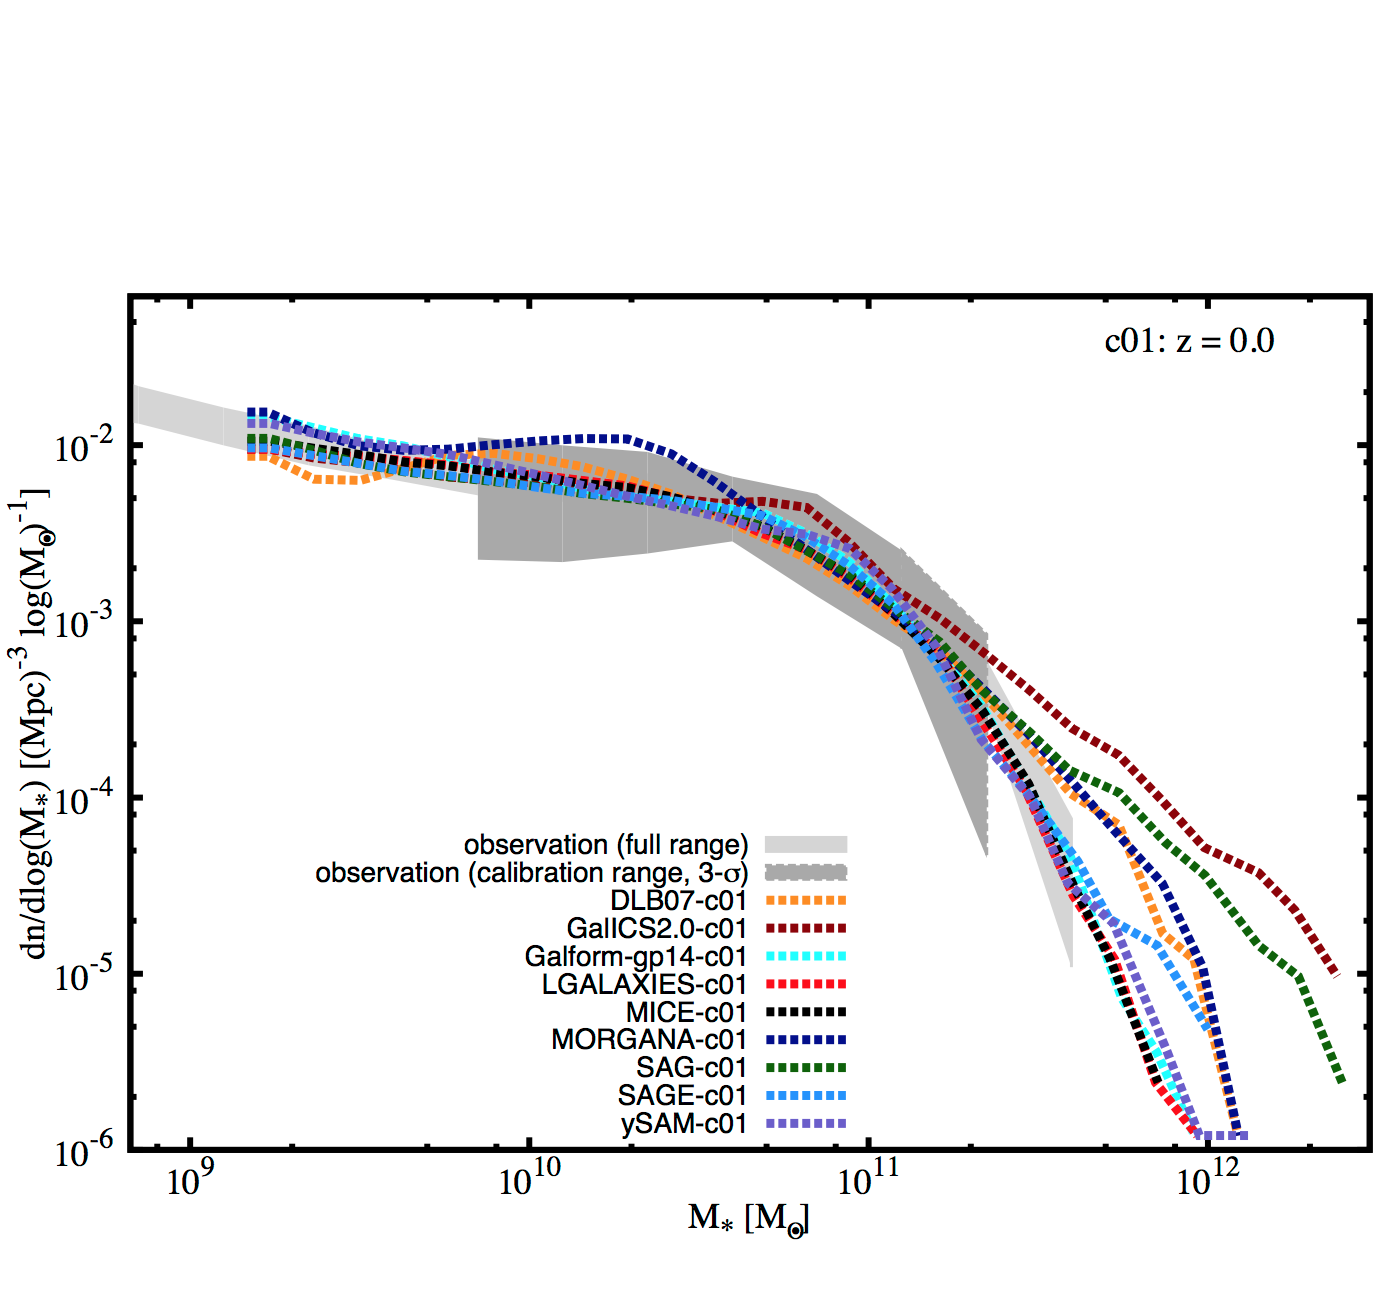 Cosmic CARNage I: on the calibration of galaxy formation models